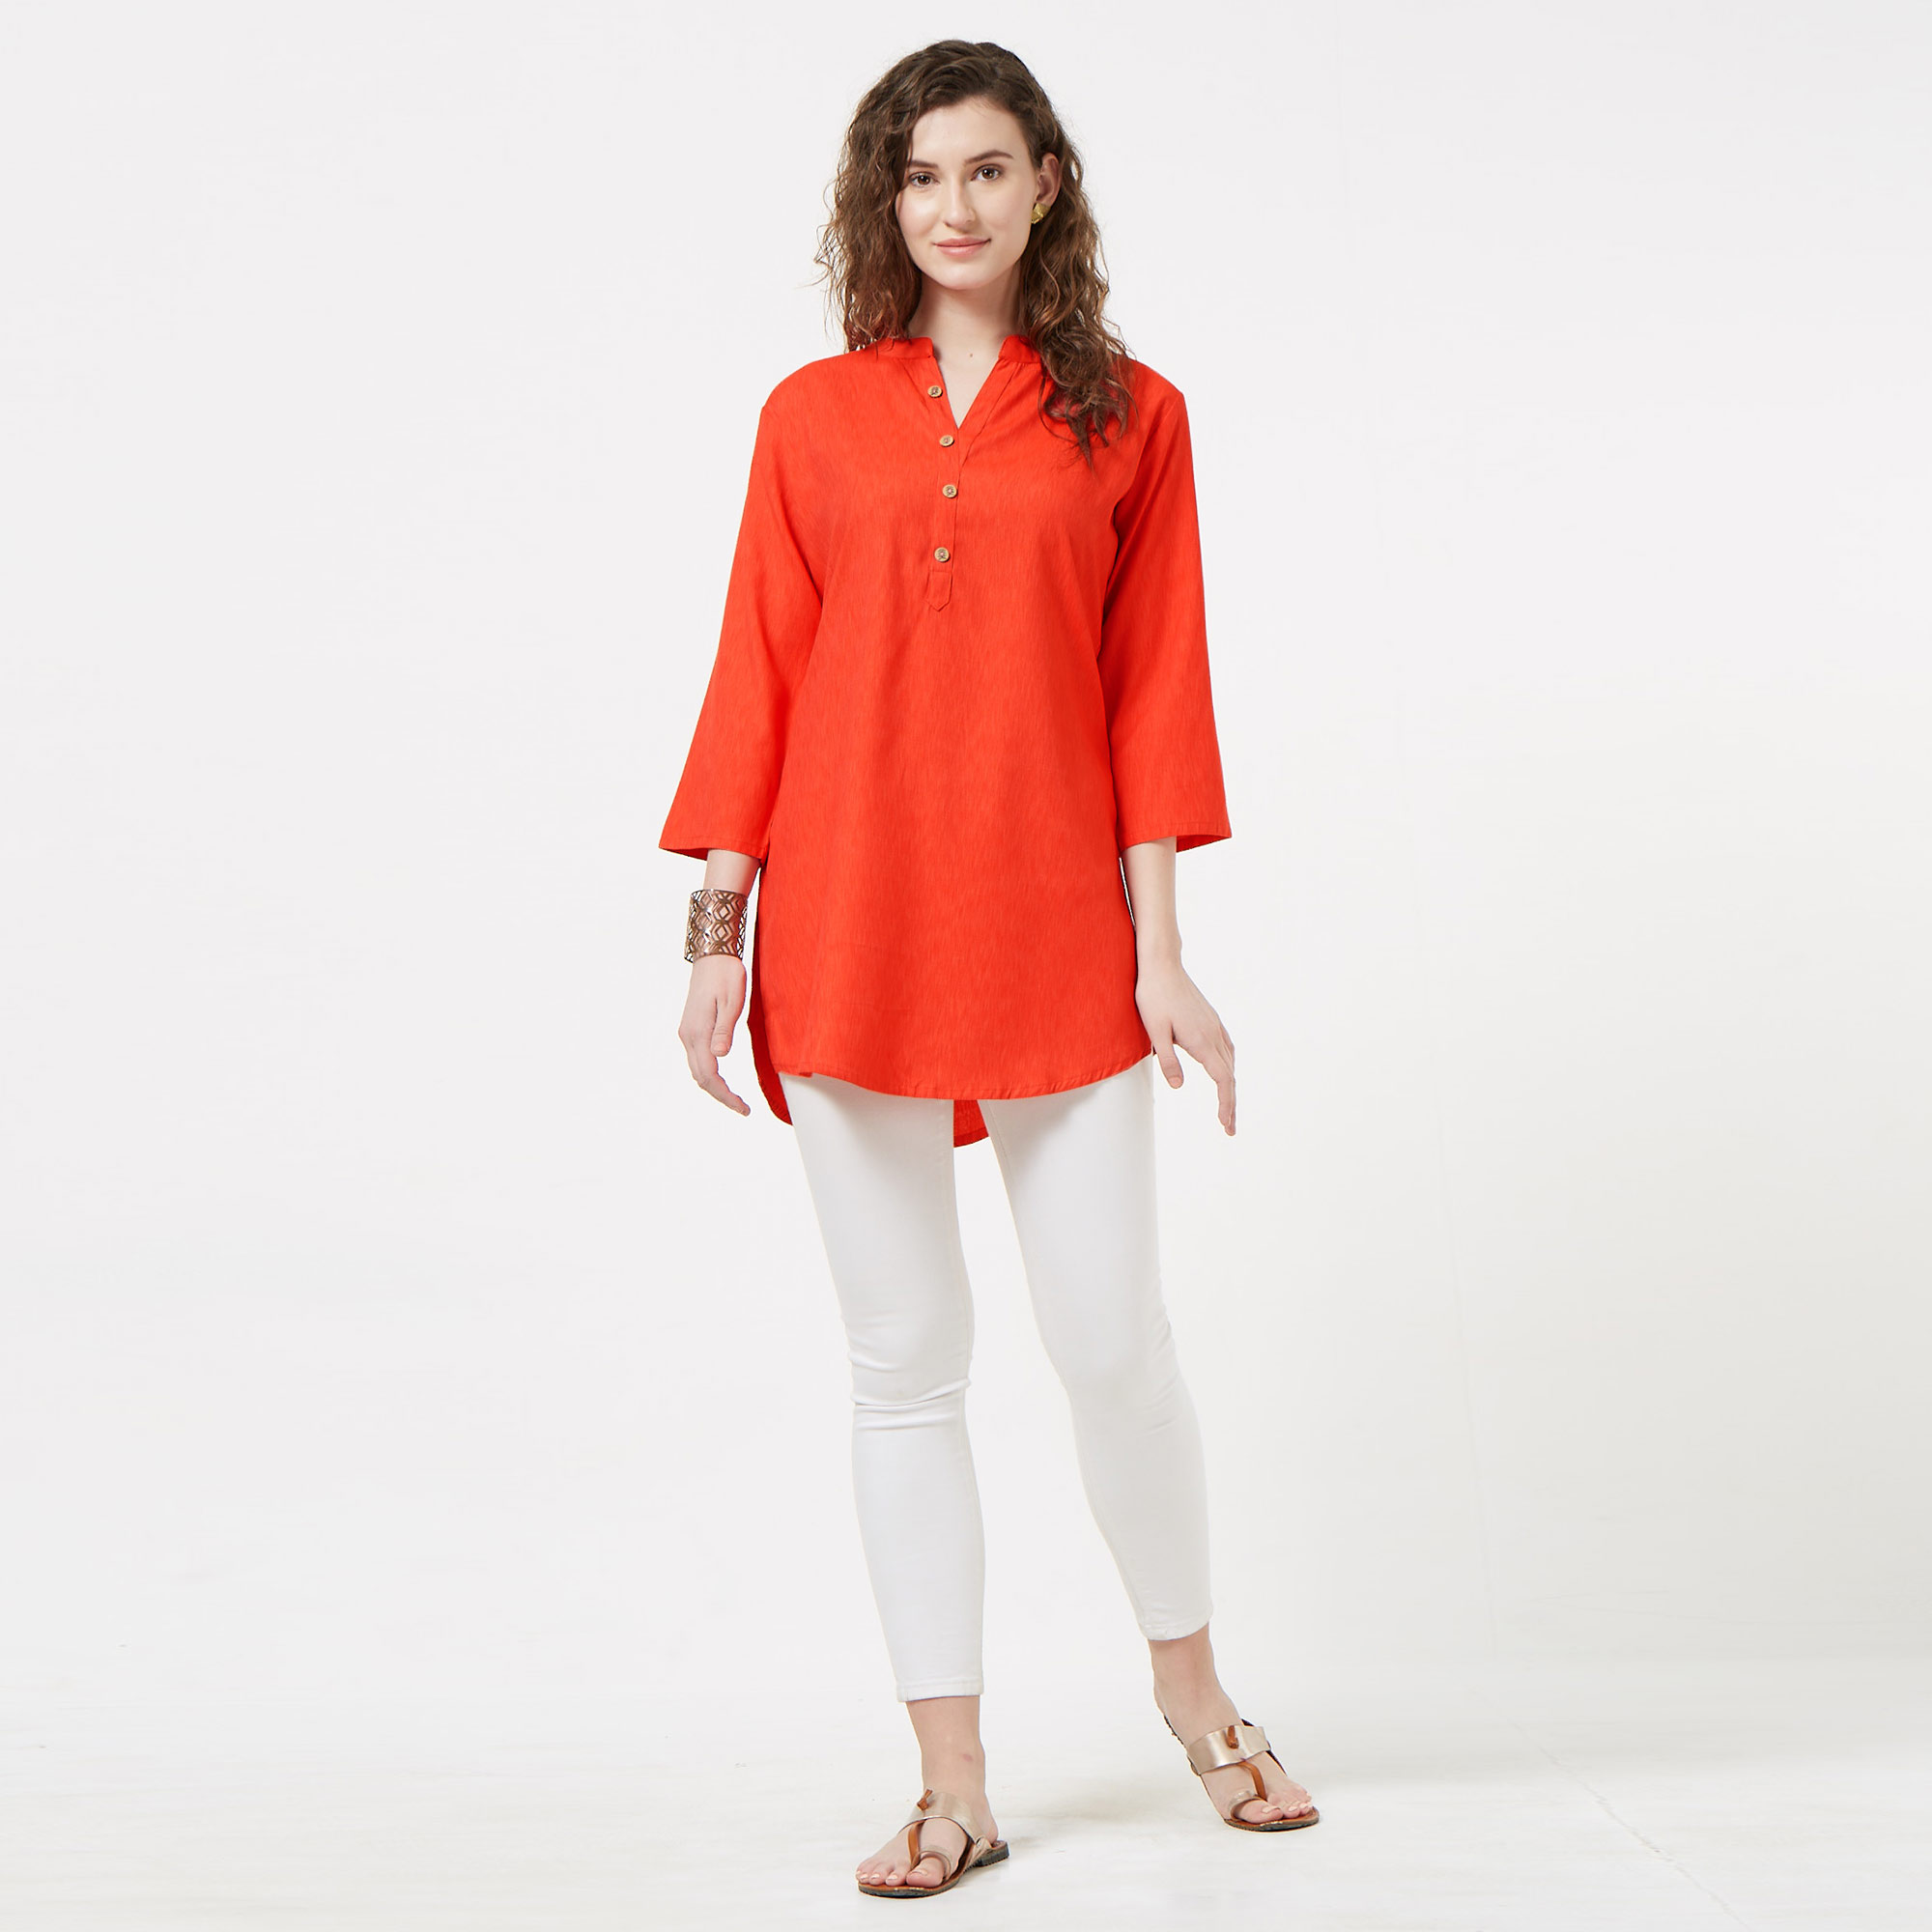 Groovy Orange Colored Casual Wear Cotton Top